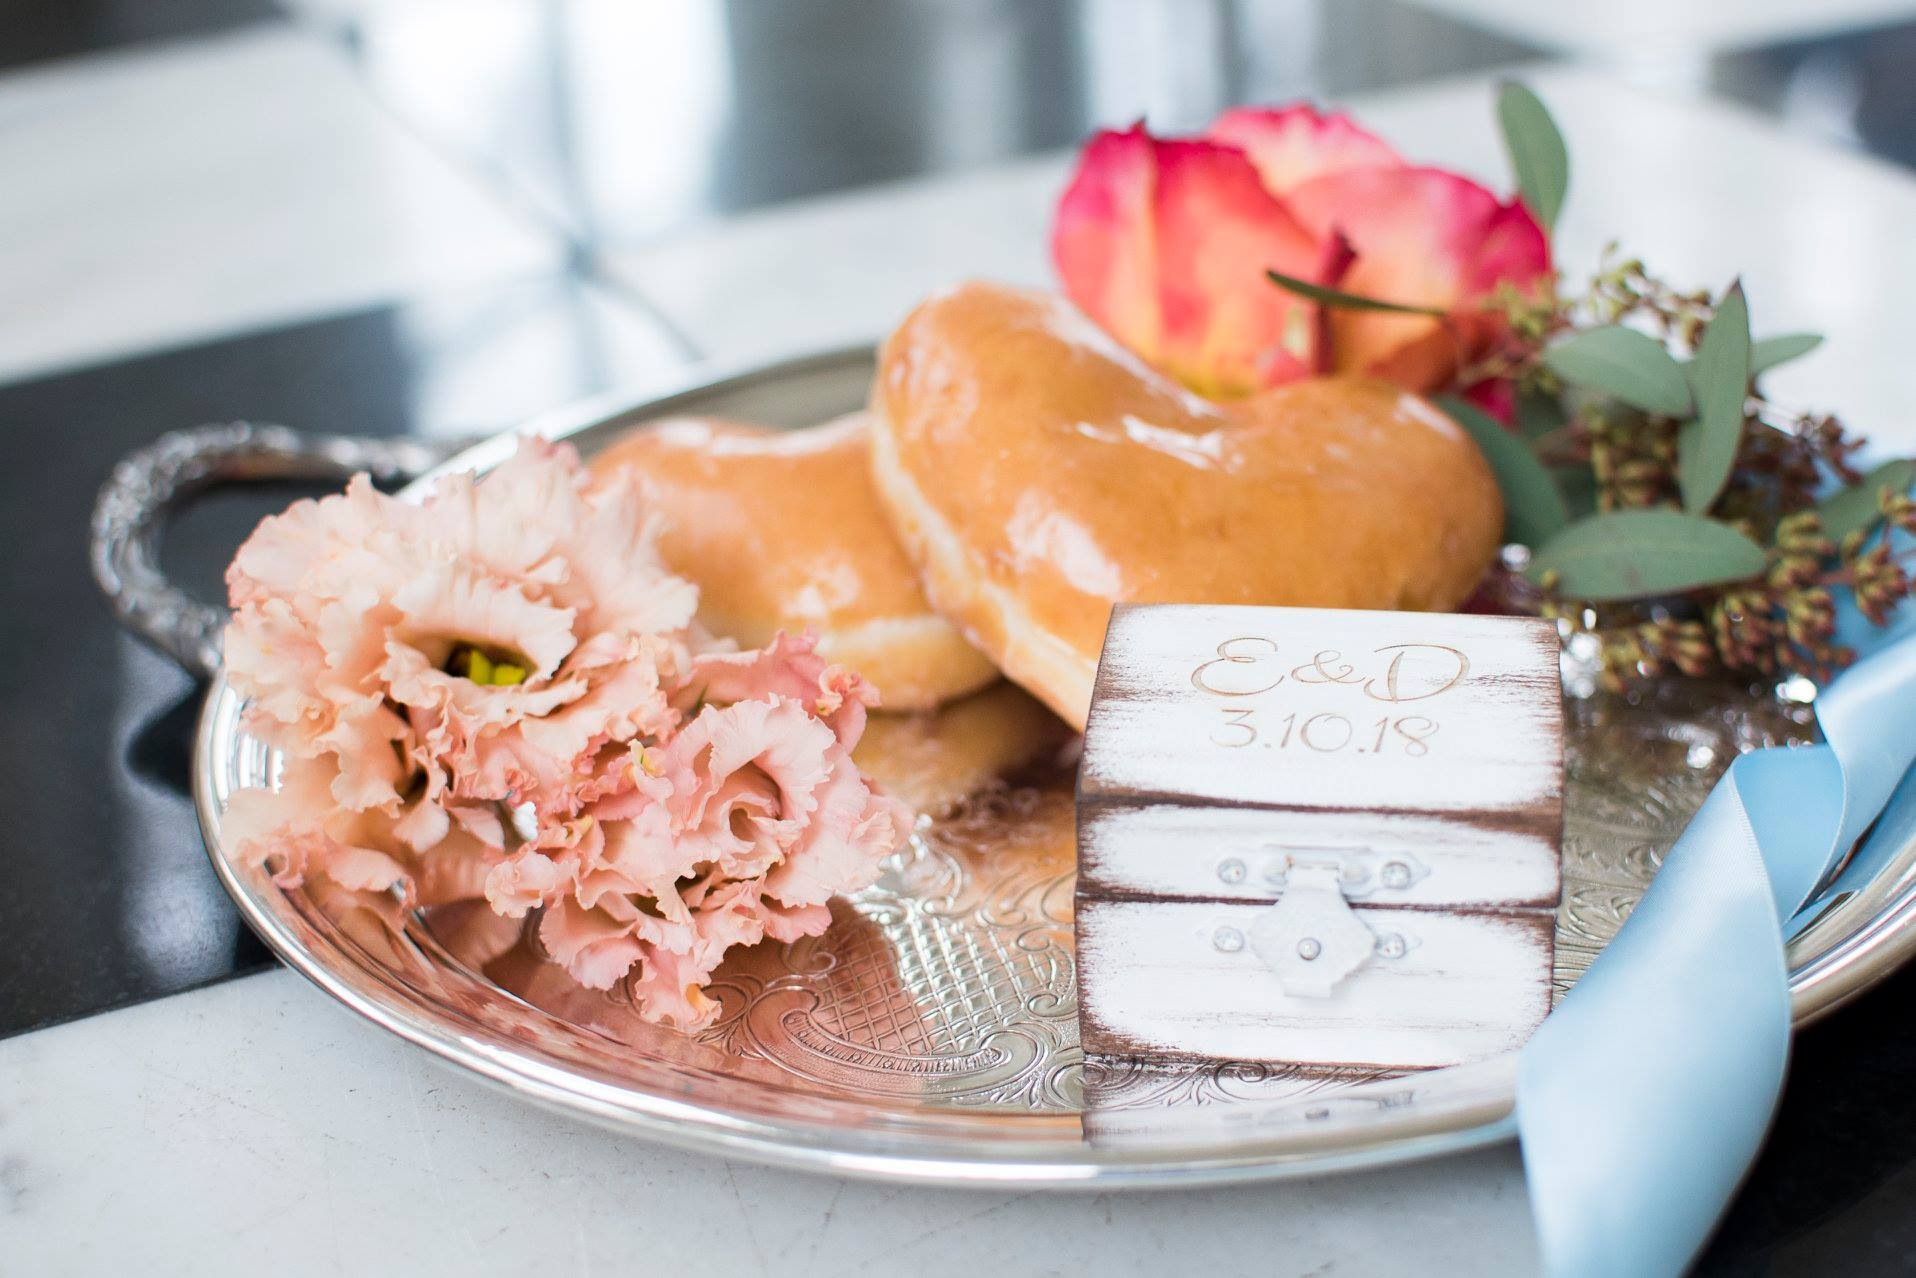 Krispy Kreme doughnuts serve as special treat for a wedding a the Separk Mansion coordinated by Magnificent Moments Weddings and coordinated by Magnificent Moments Weddings